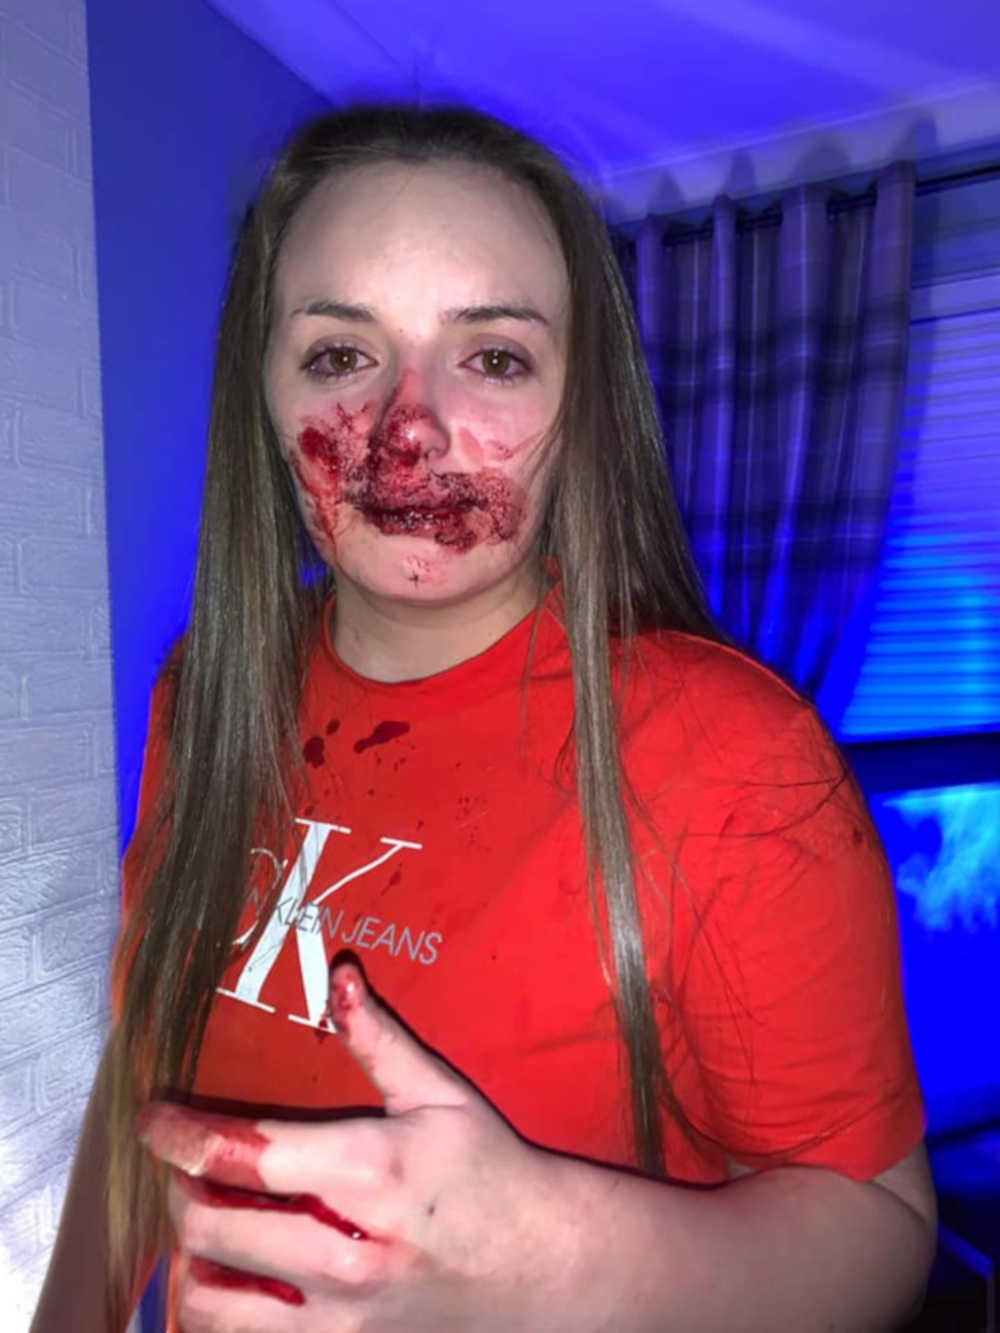 Brogan Shanley was repteadly kicked in the face